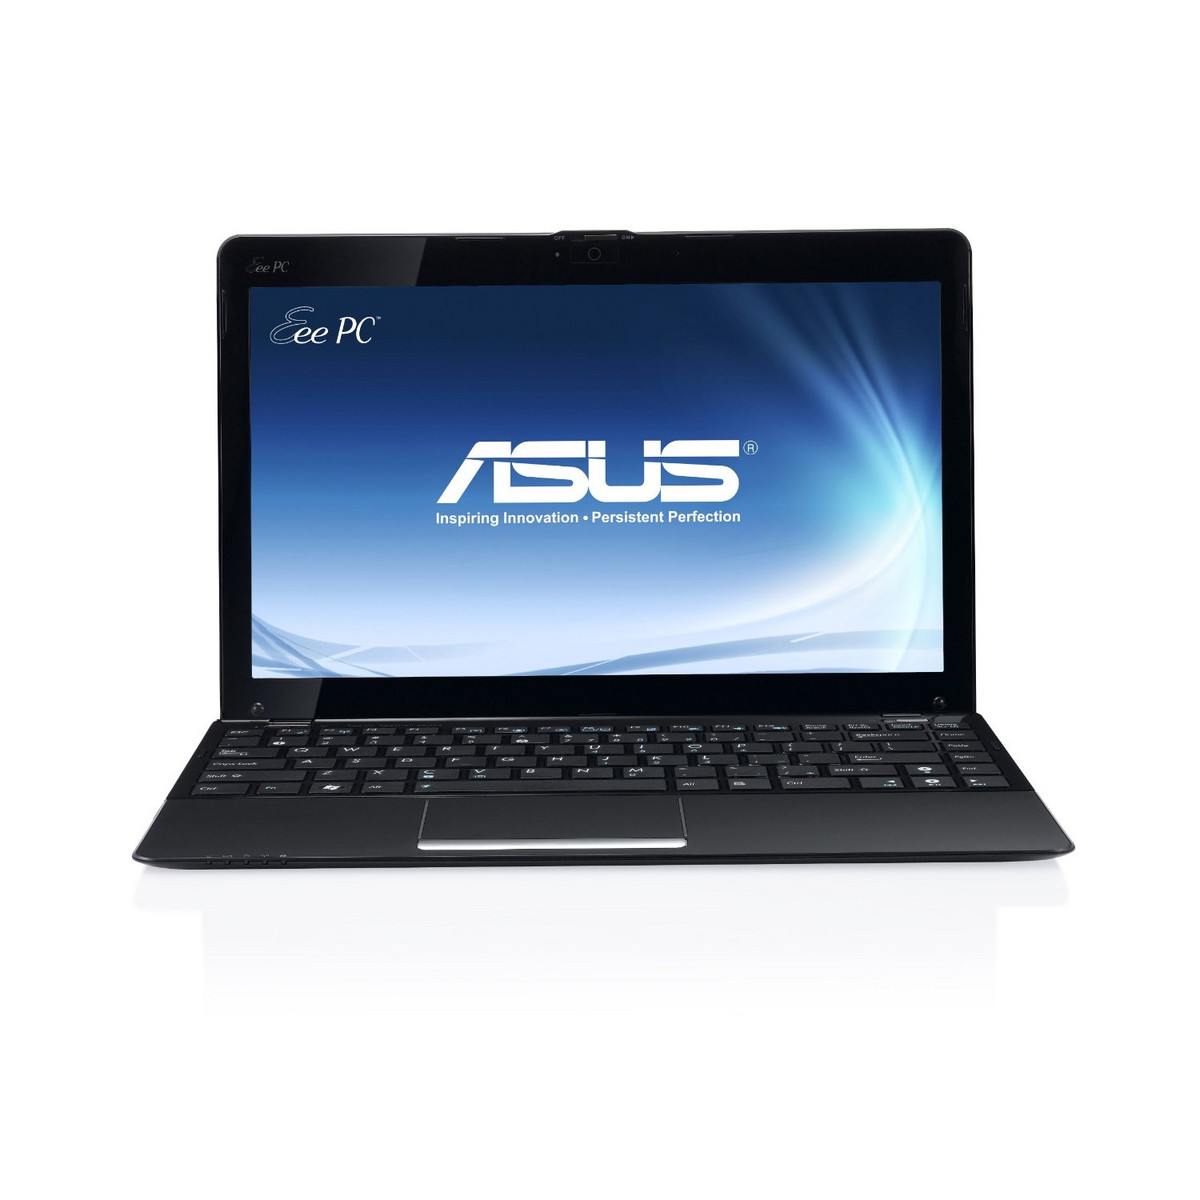 Asus Eee PC VX6 NotebookNEC USB 3.0 Driver PC